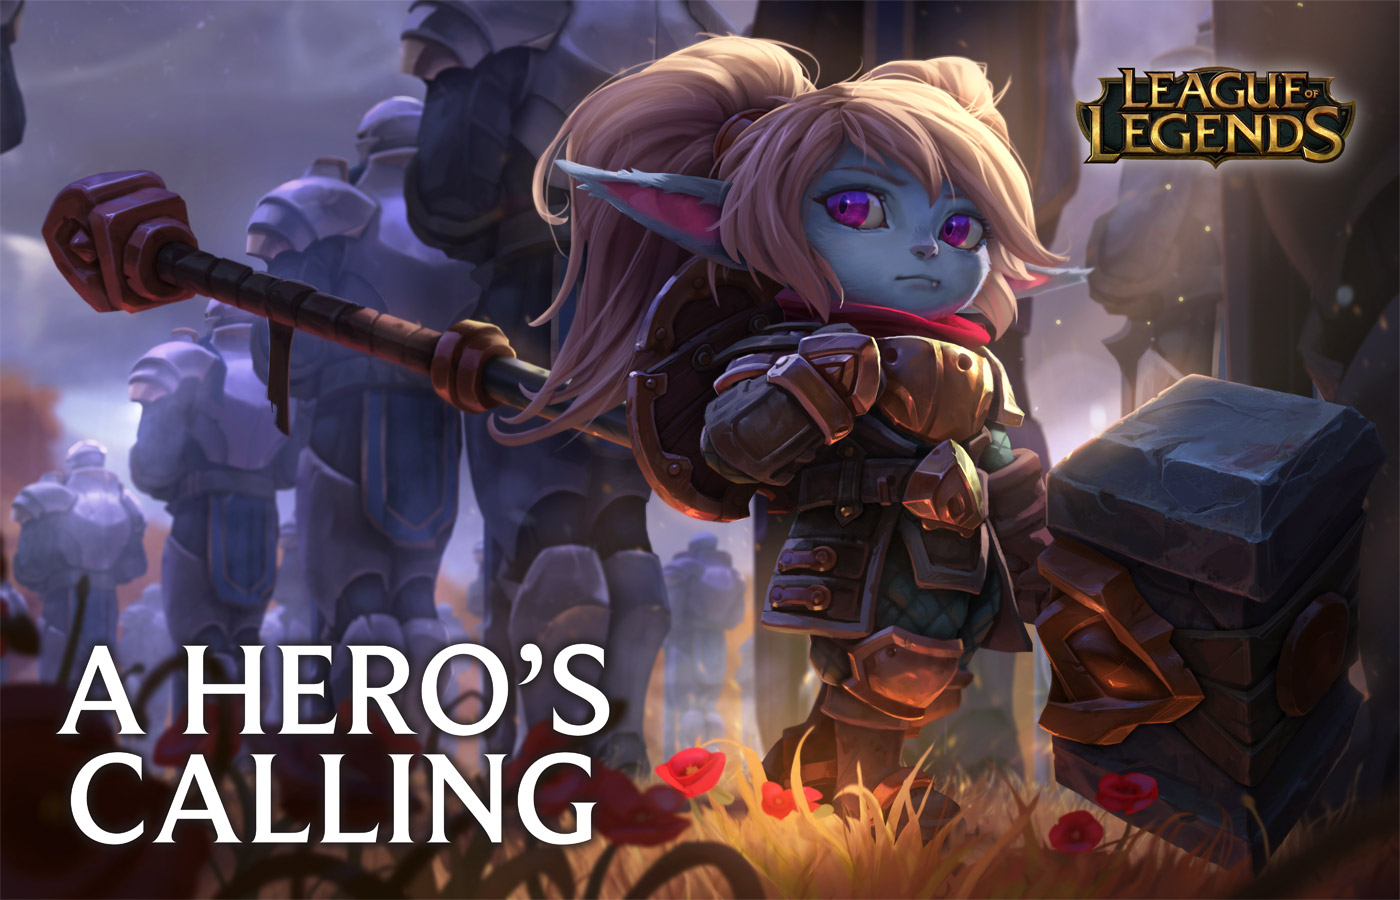 League of Legends - A Hero's Calling